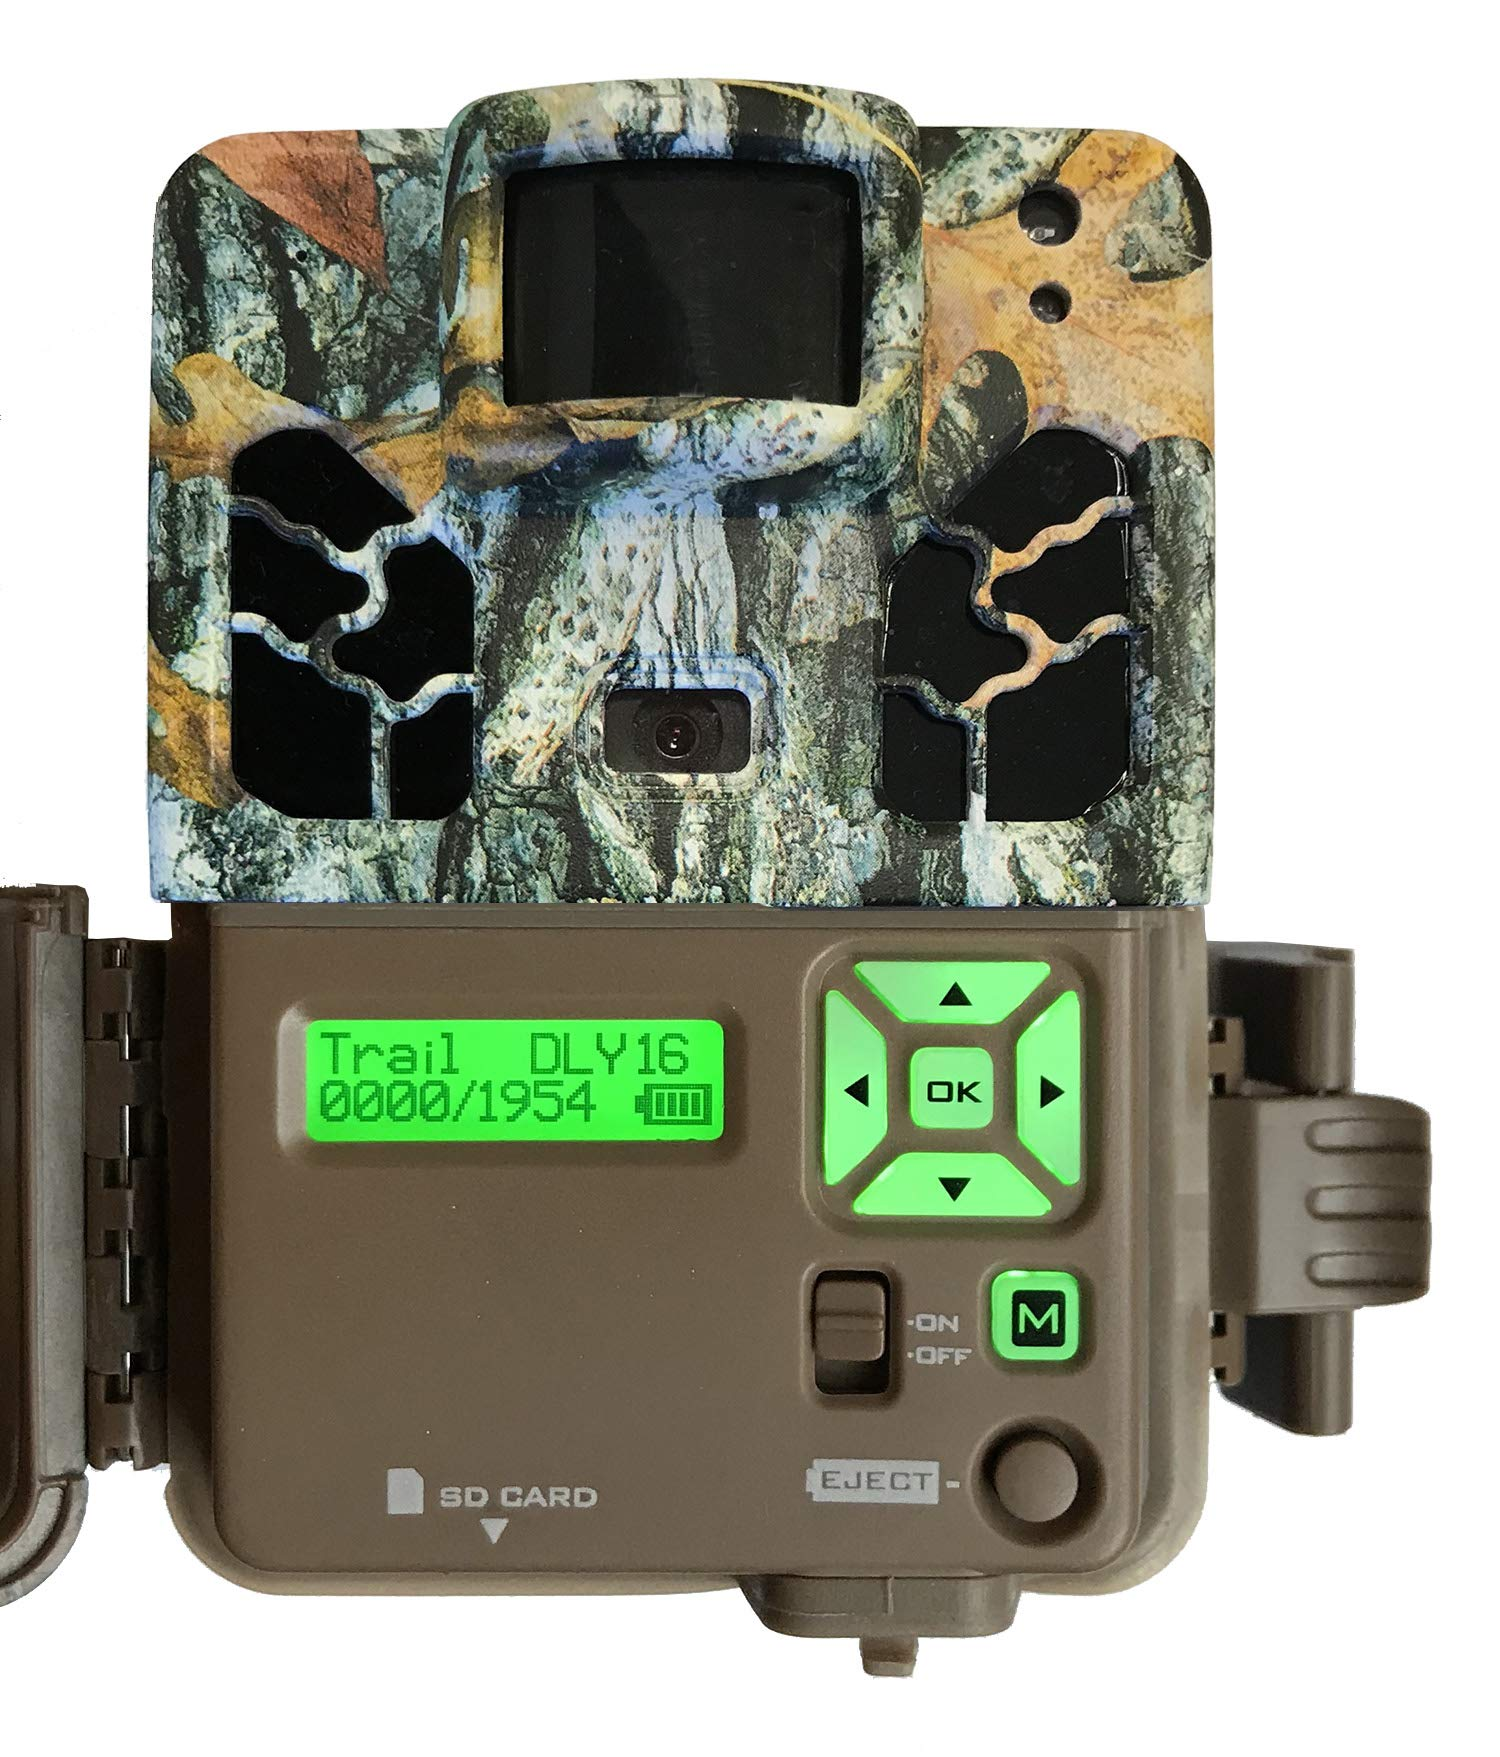 Browning Dark OPS HD APEX (2019) Trail Game Camera Bundle Includes 32GB Memory Card and J-TECH iPhone/iPad/Android USB Memory Card Reader | BTC6HDAPX